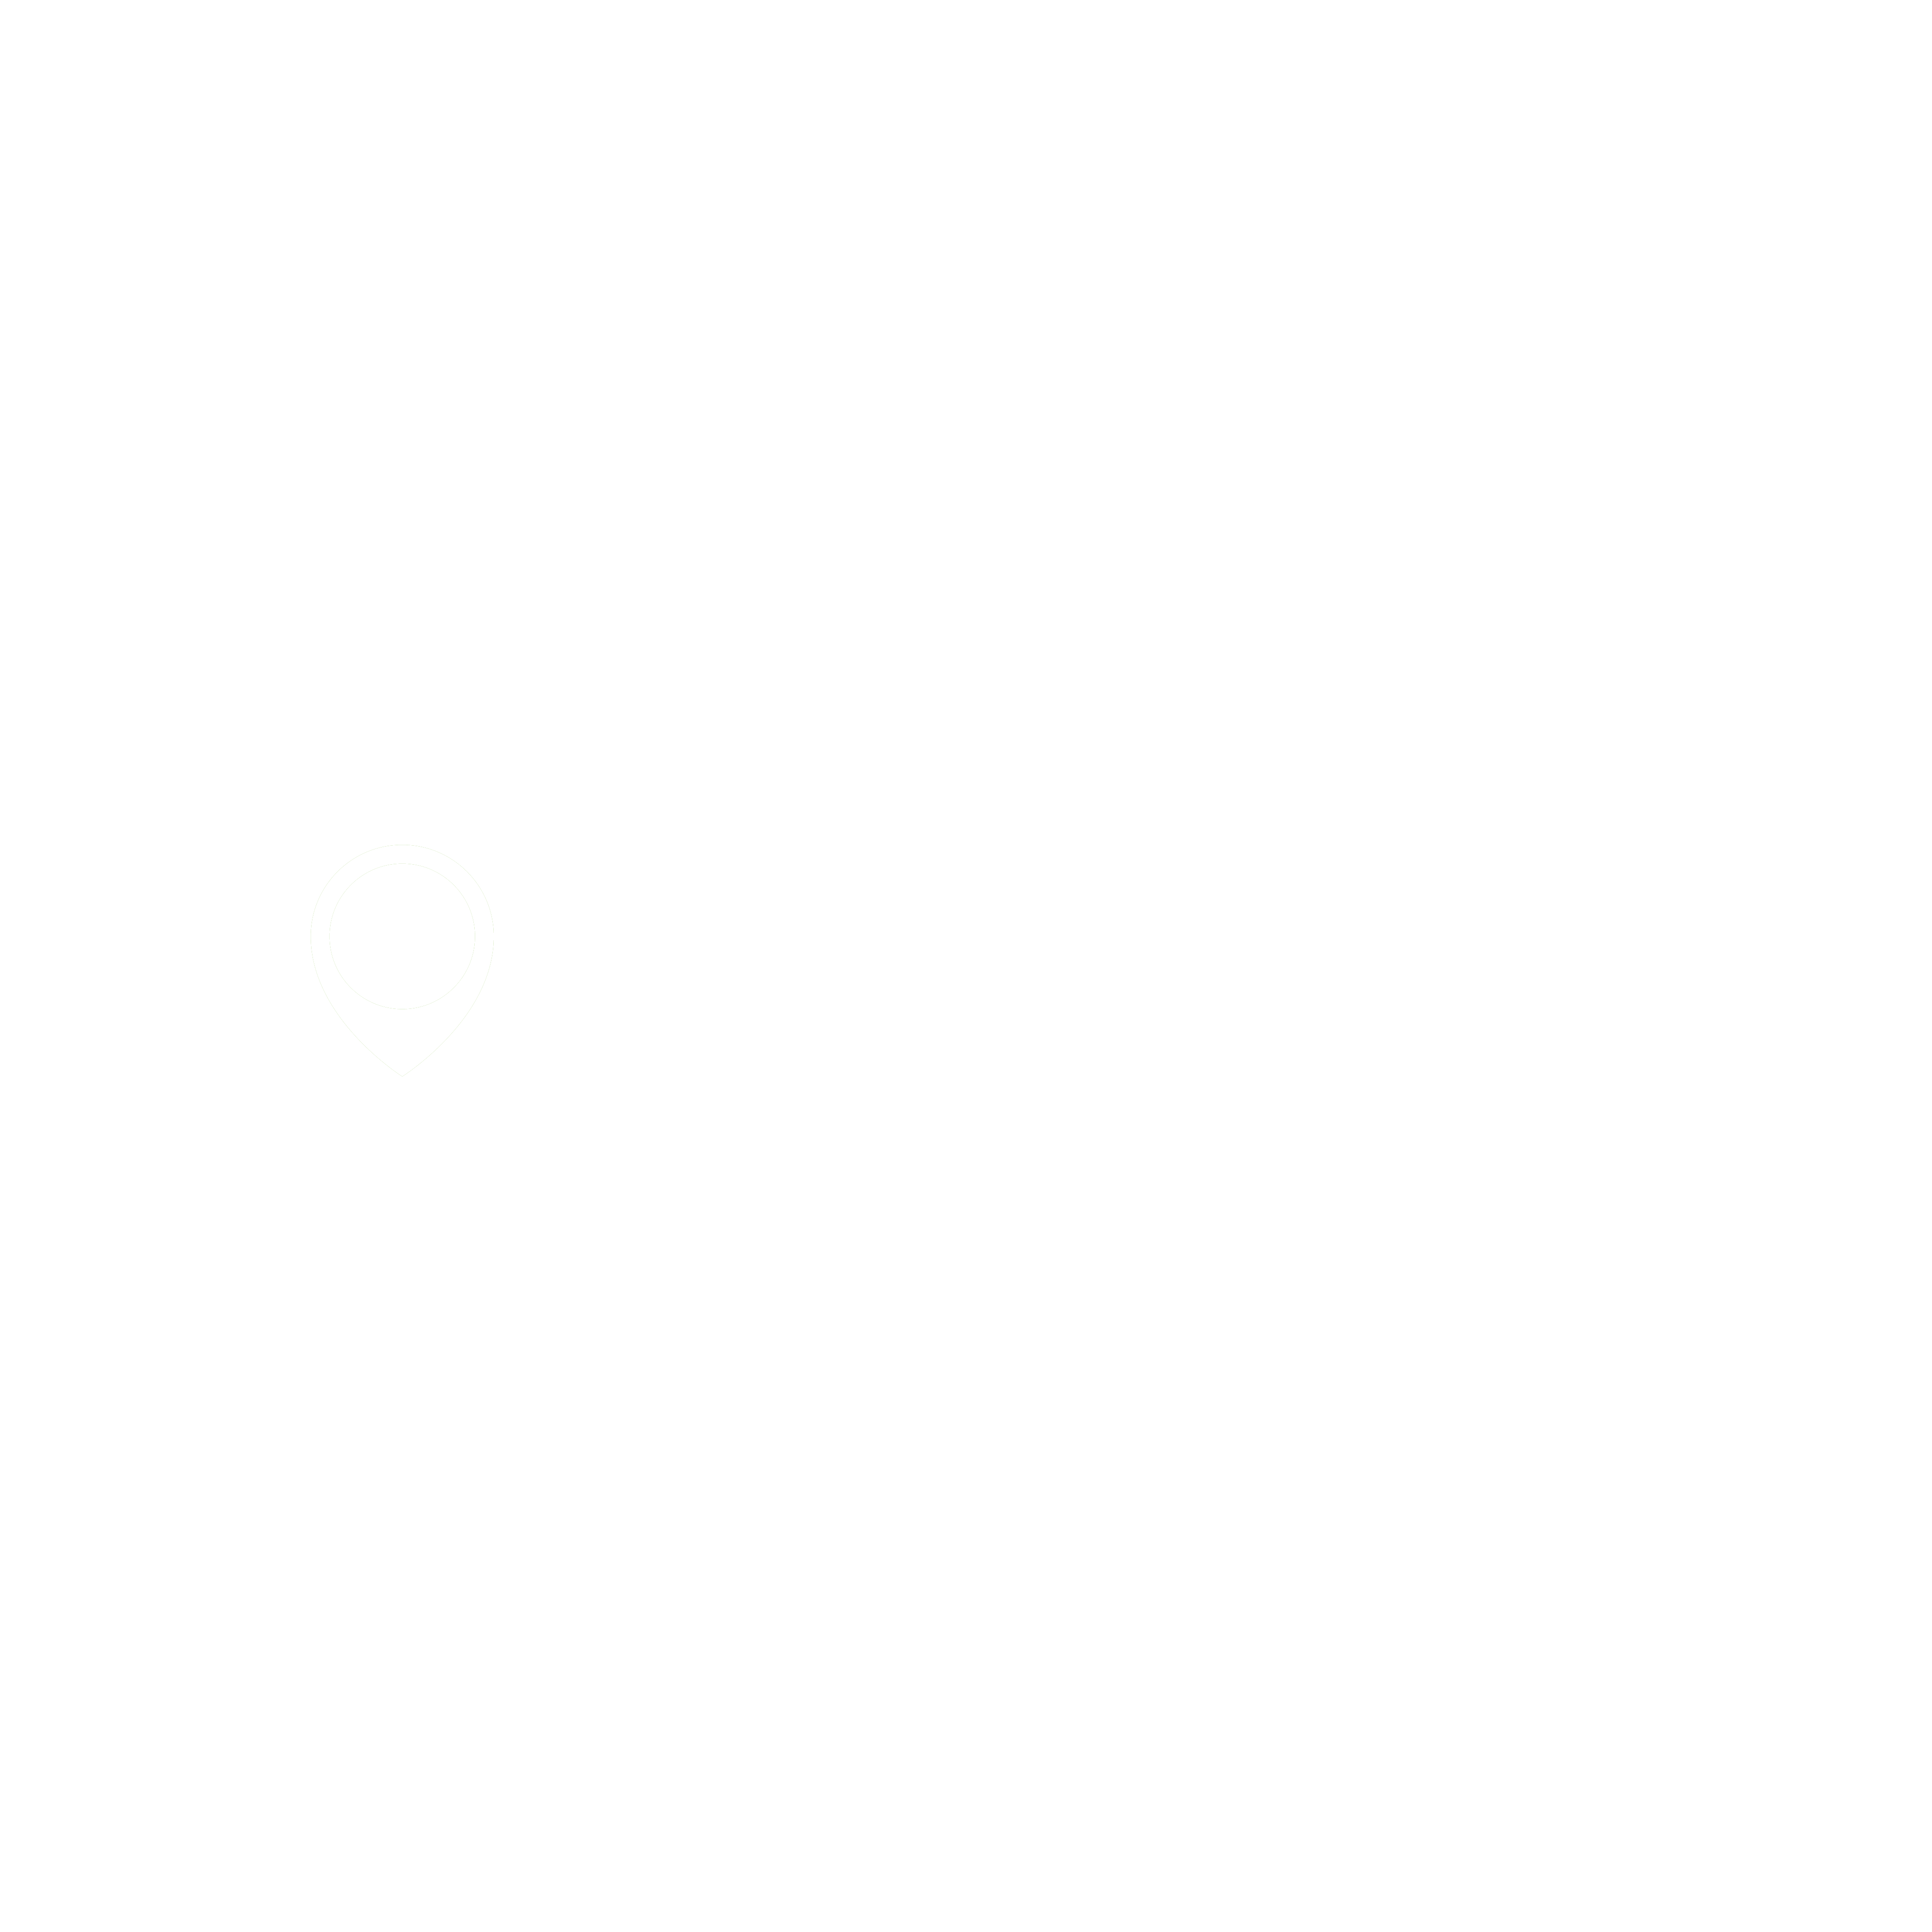 Design a simple, modern logo for Rise Up Local